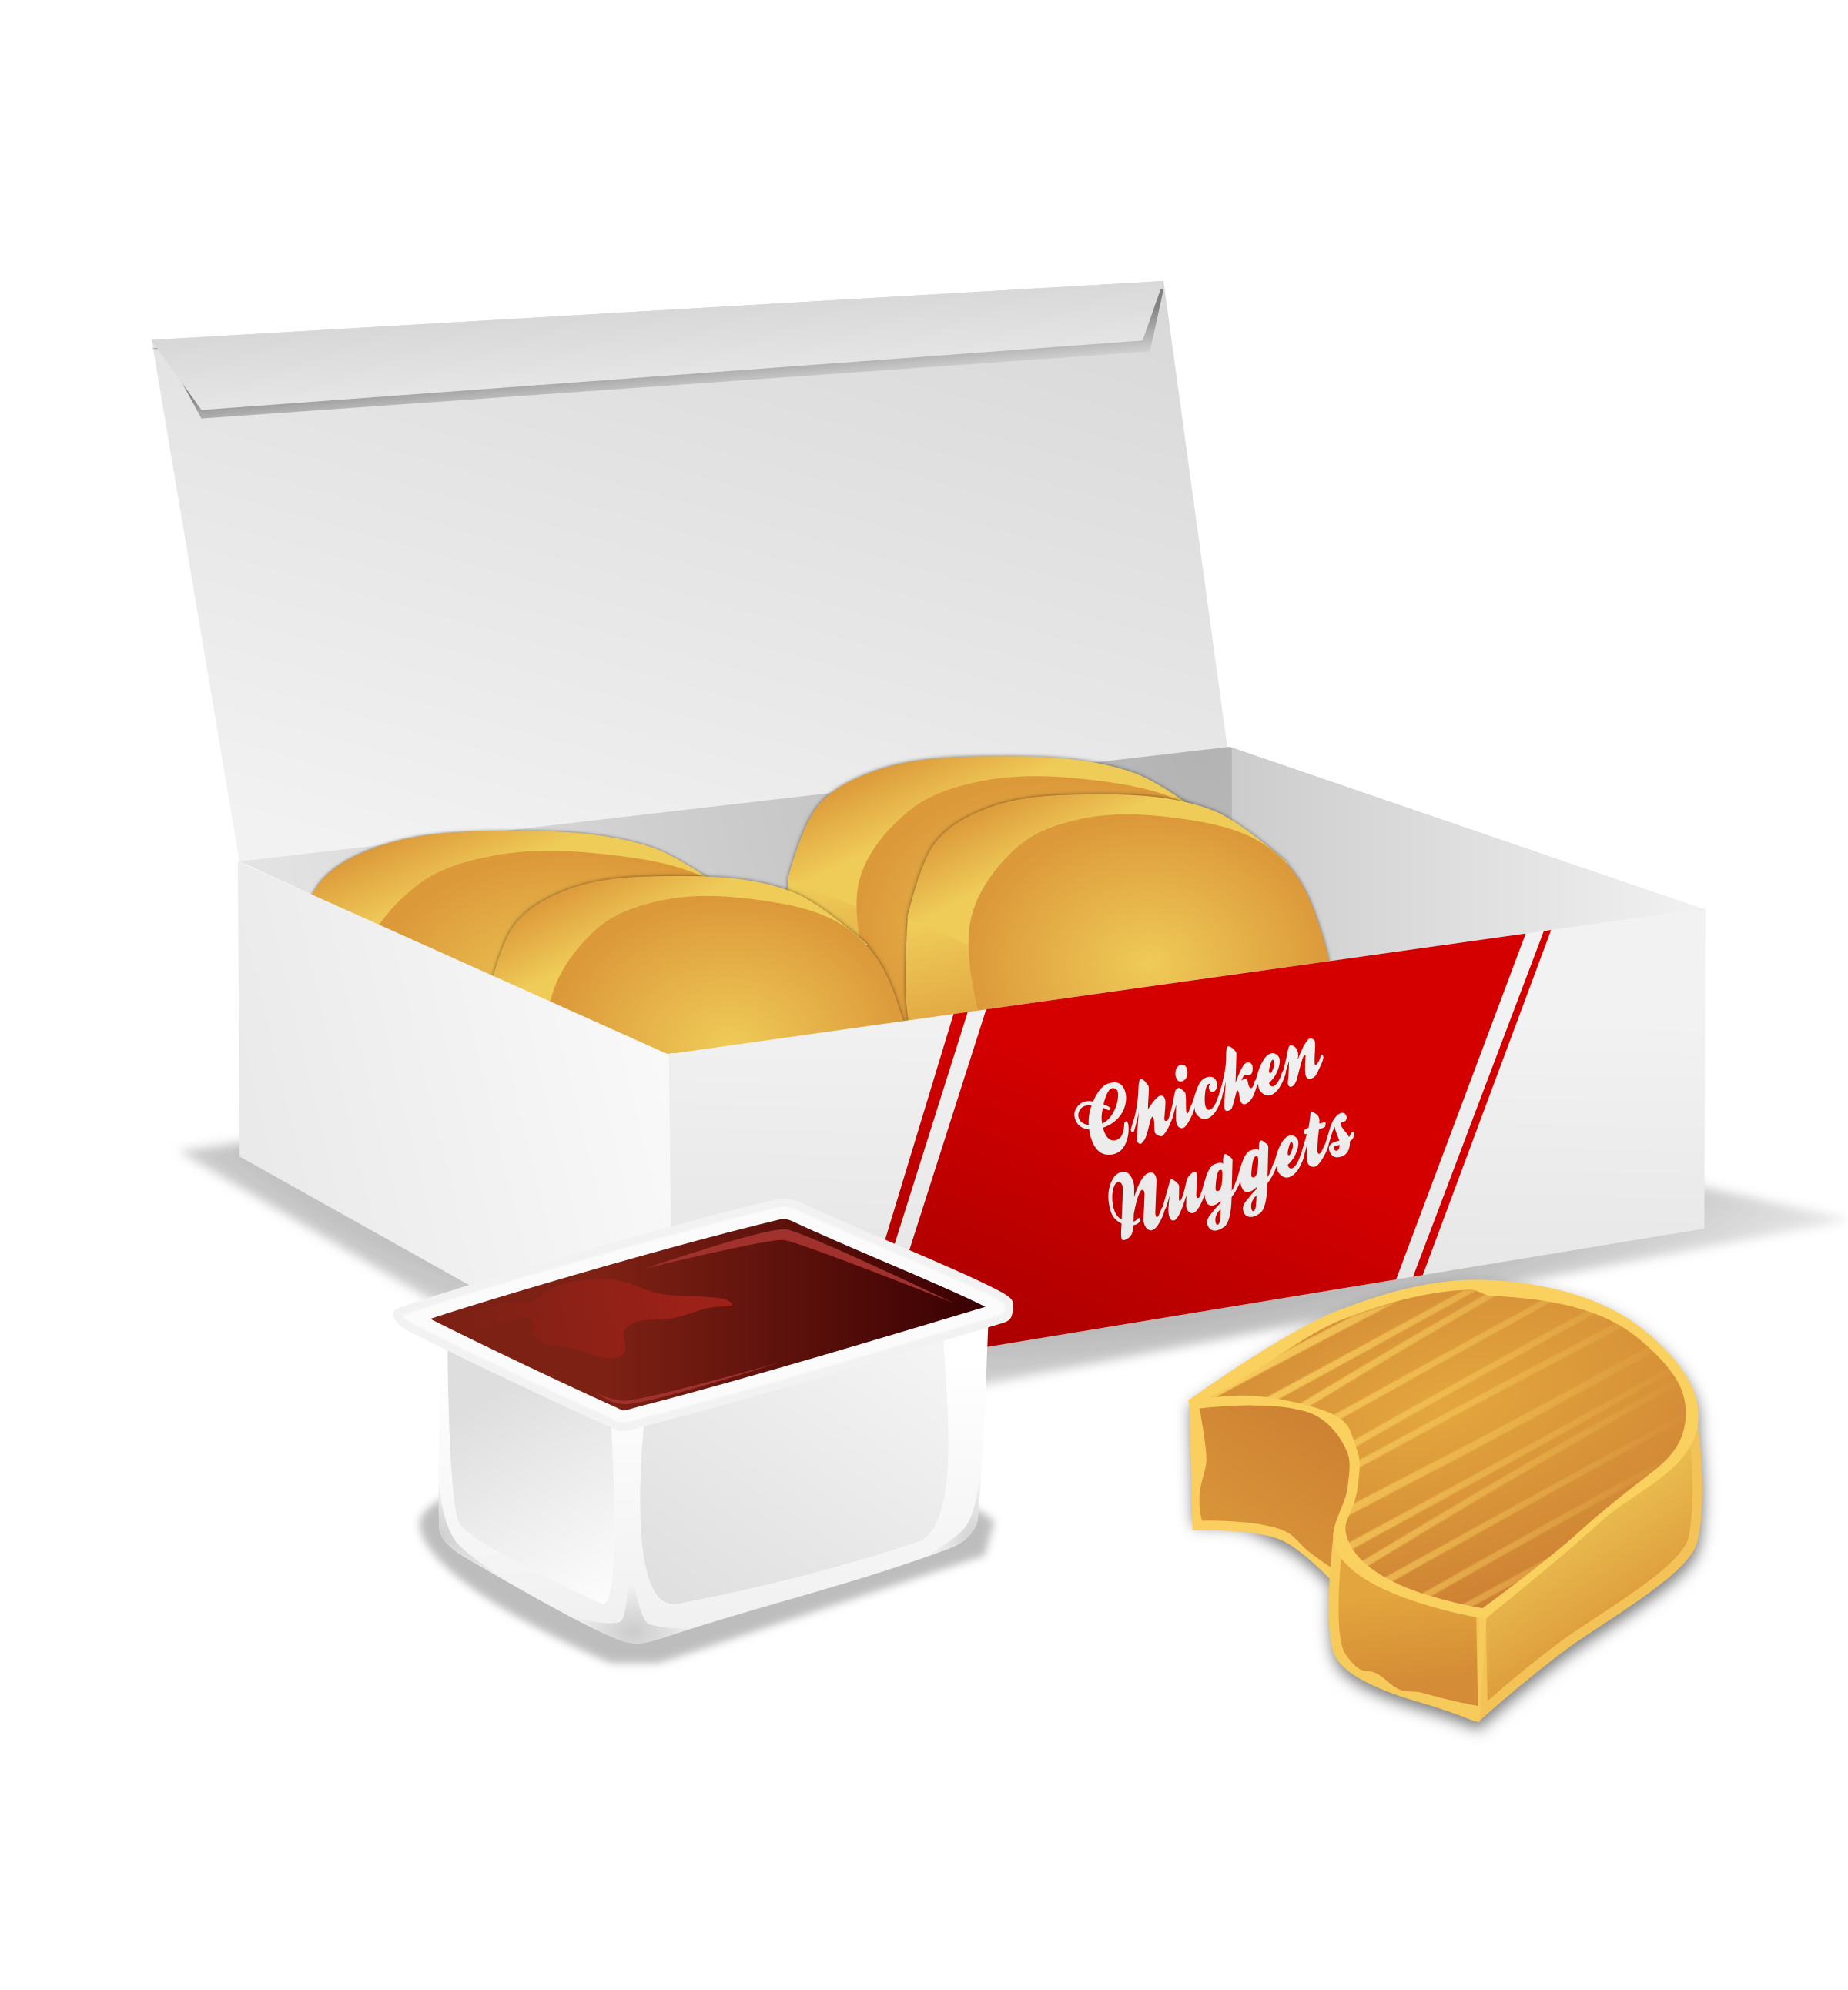 Chicken nuggets big image. Fries clipart appetizer